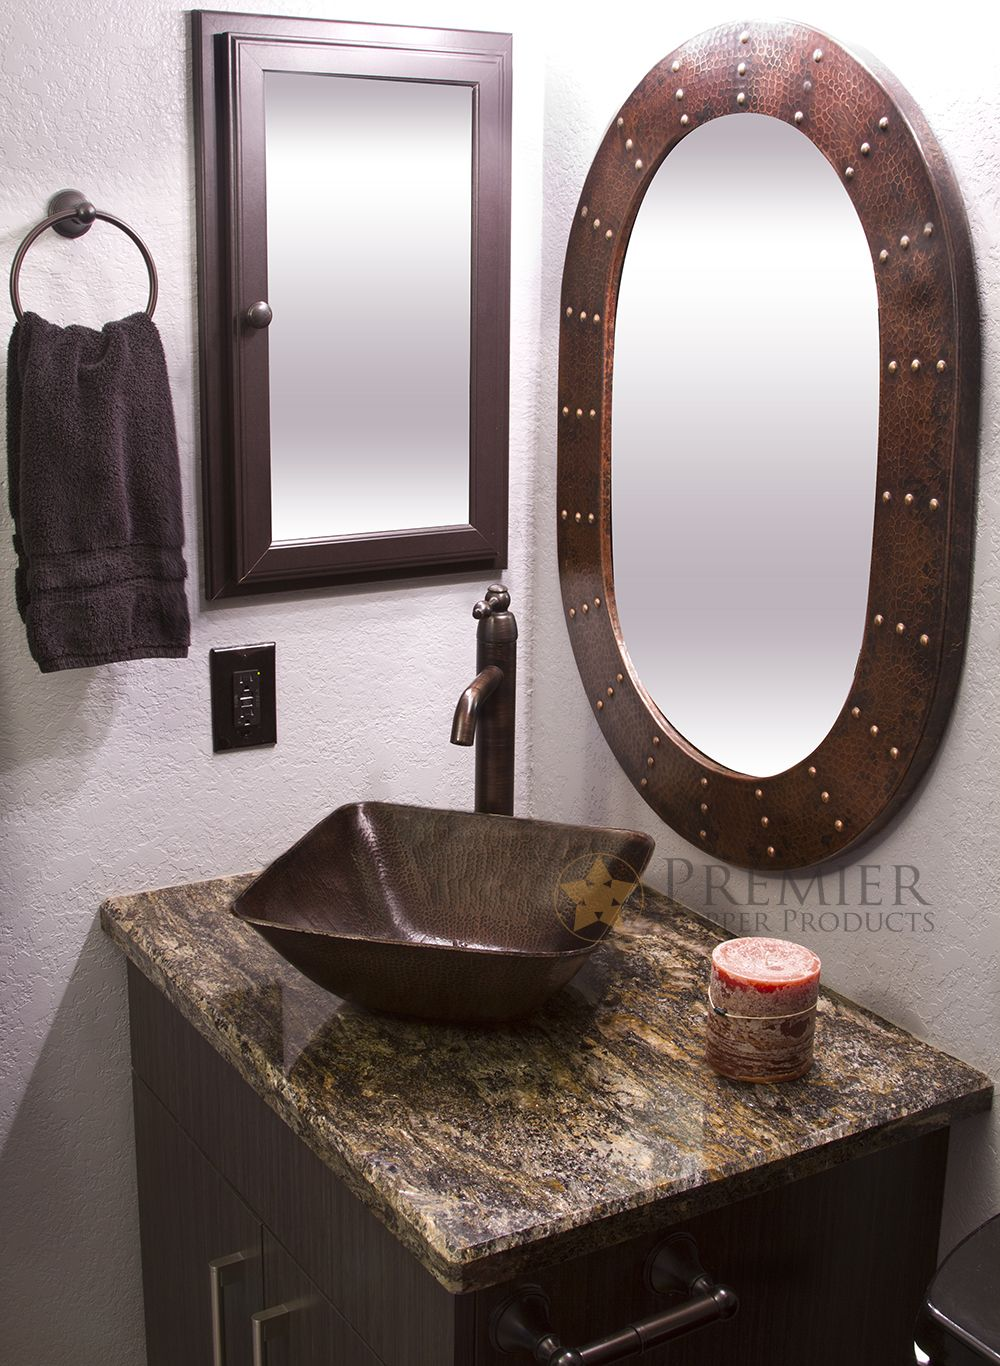 The Square Vessel Hammered Copper Sink Pairs Perfectly with Our